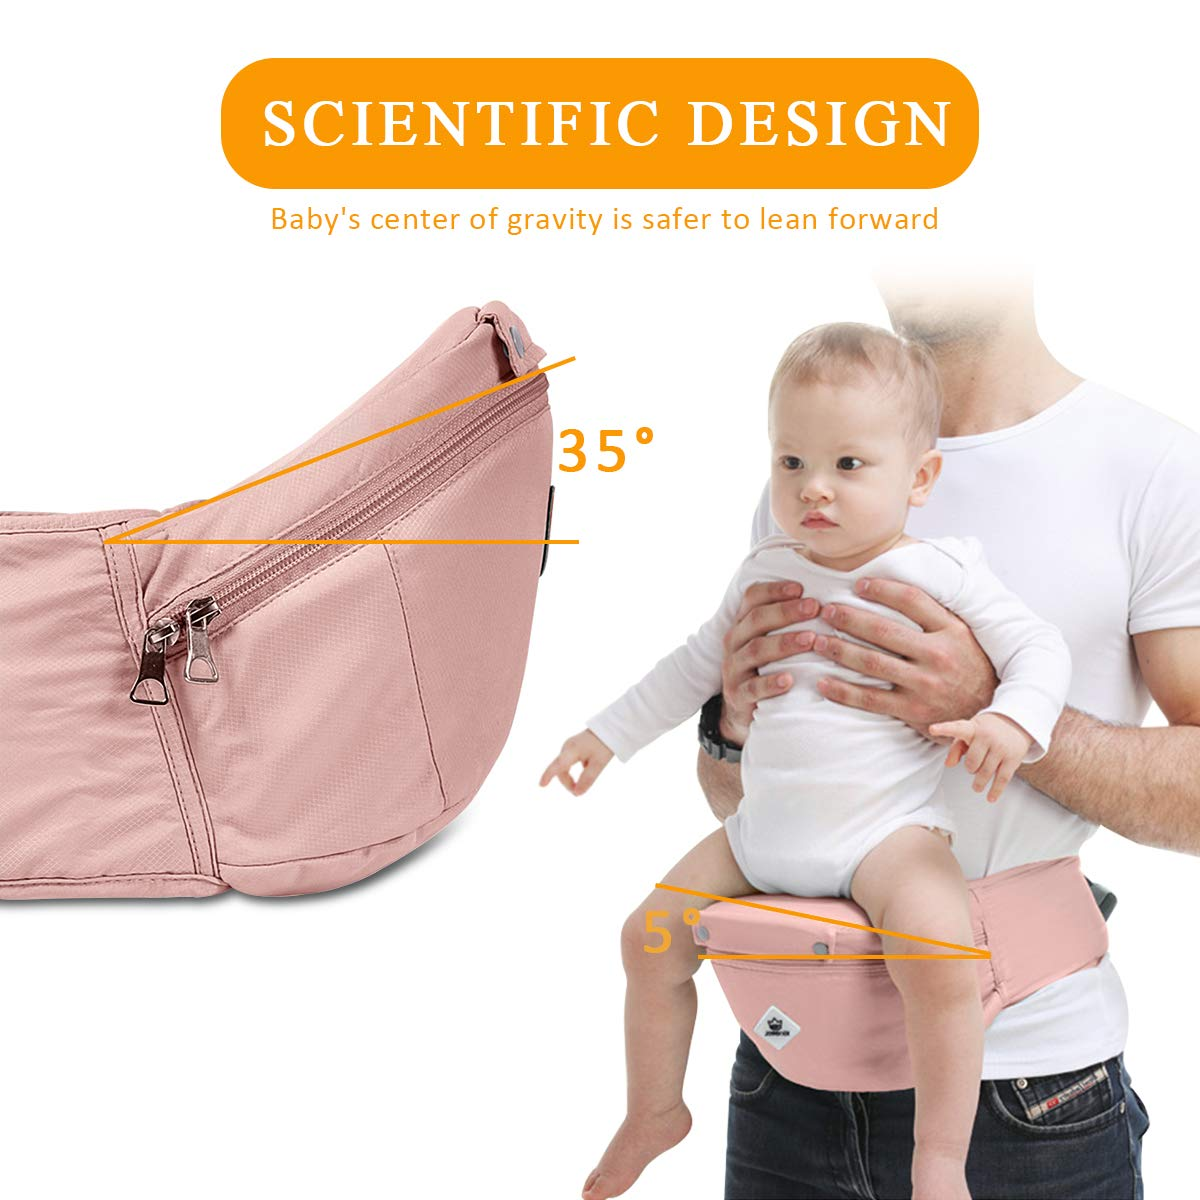 Light Green Adapted to Your Childs Growing,Easy to Carry and Easy Mom Ideal Gift SONARIN Multifunctional Hipseat Baby Carrier 100/% Cotton Breathable Straps Large Capacity Storage,11 Carrying Positions,Safe and Comfortable Ergonomic